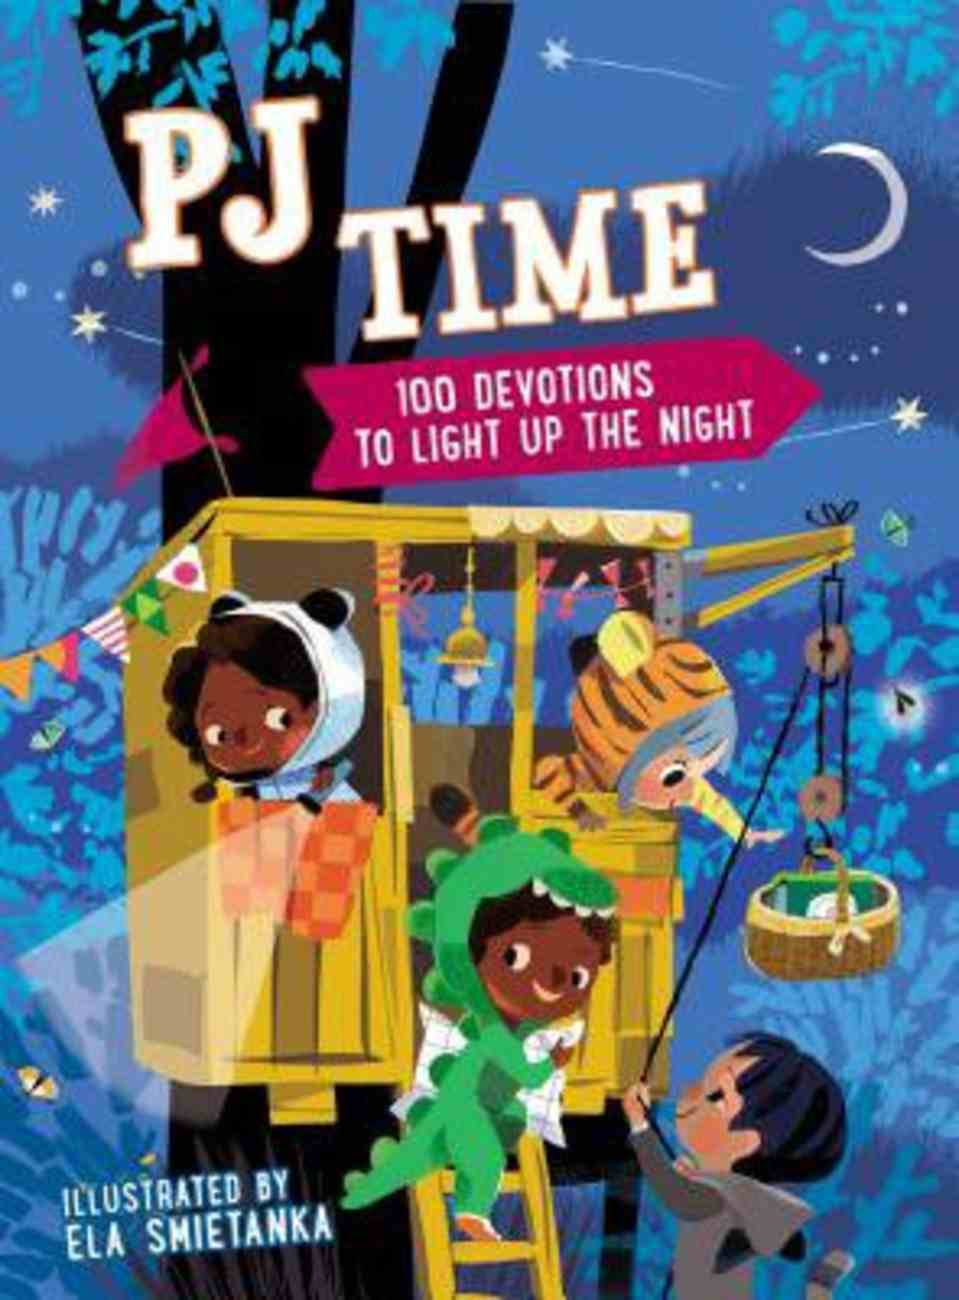 Pj Time: 100 Devotions to Light Up the Night Hardback